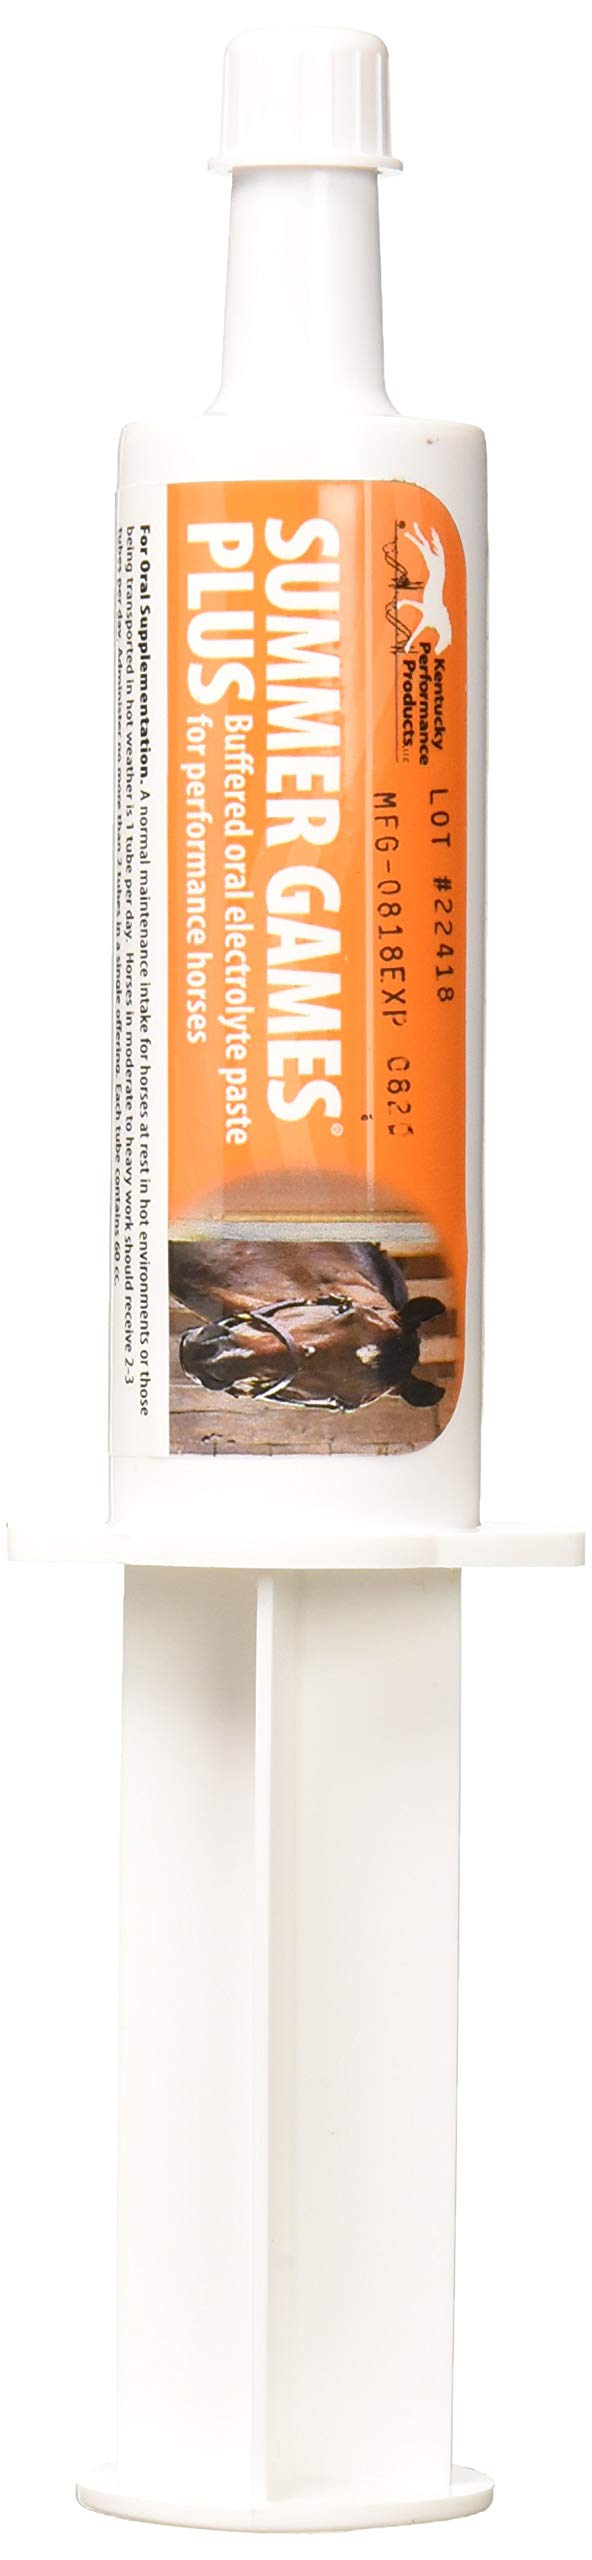 Kentucky Performance Prod (04409 Electrolyte Paste for Horses (3 Pack) 044093 60cc Summer Games Plus Elect by Kentucky Performance Prod